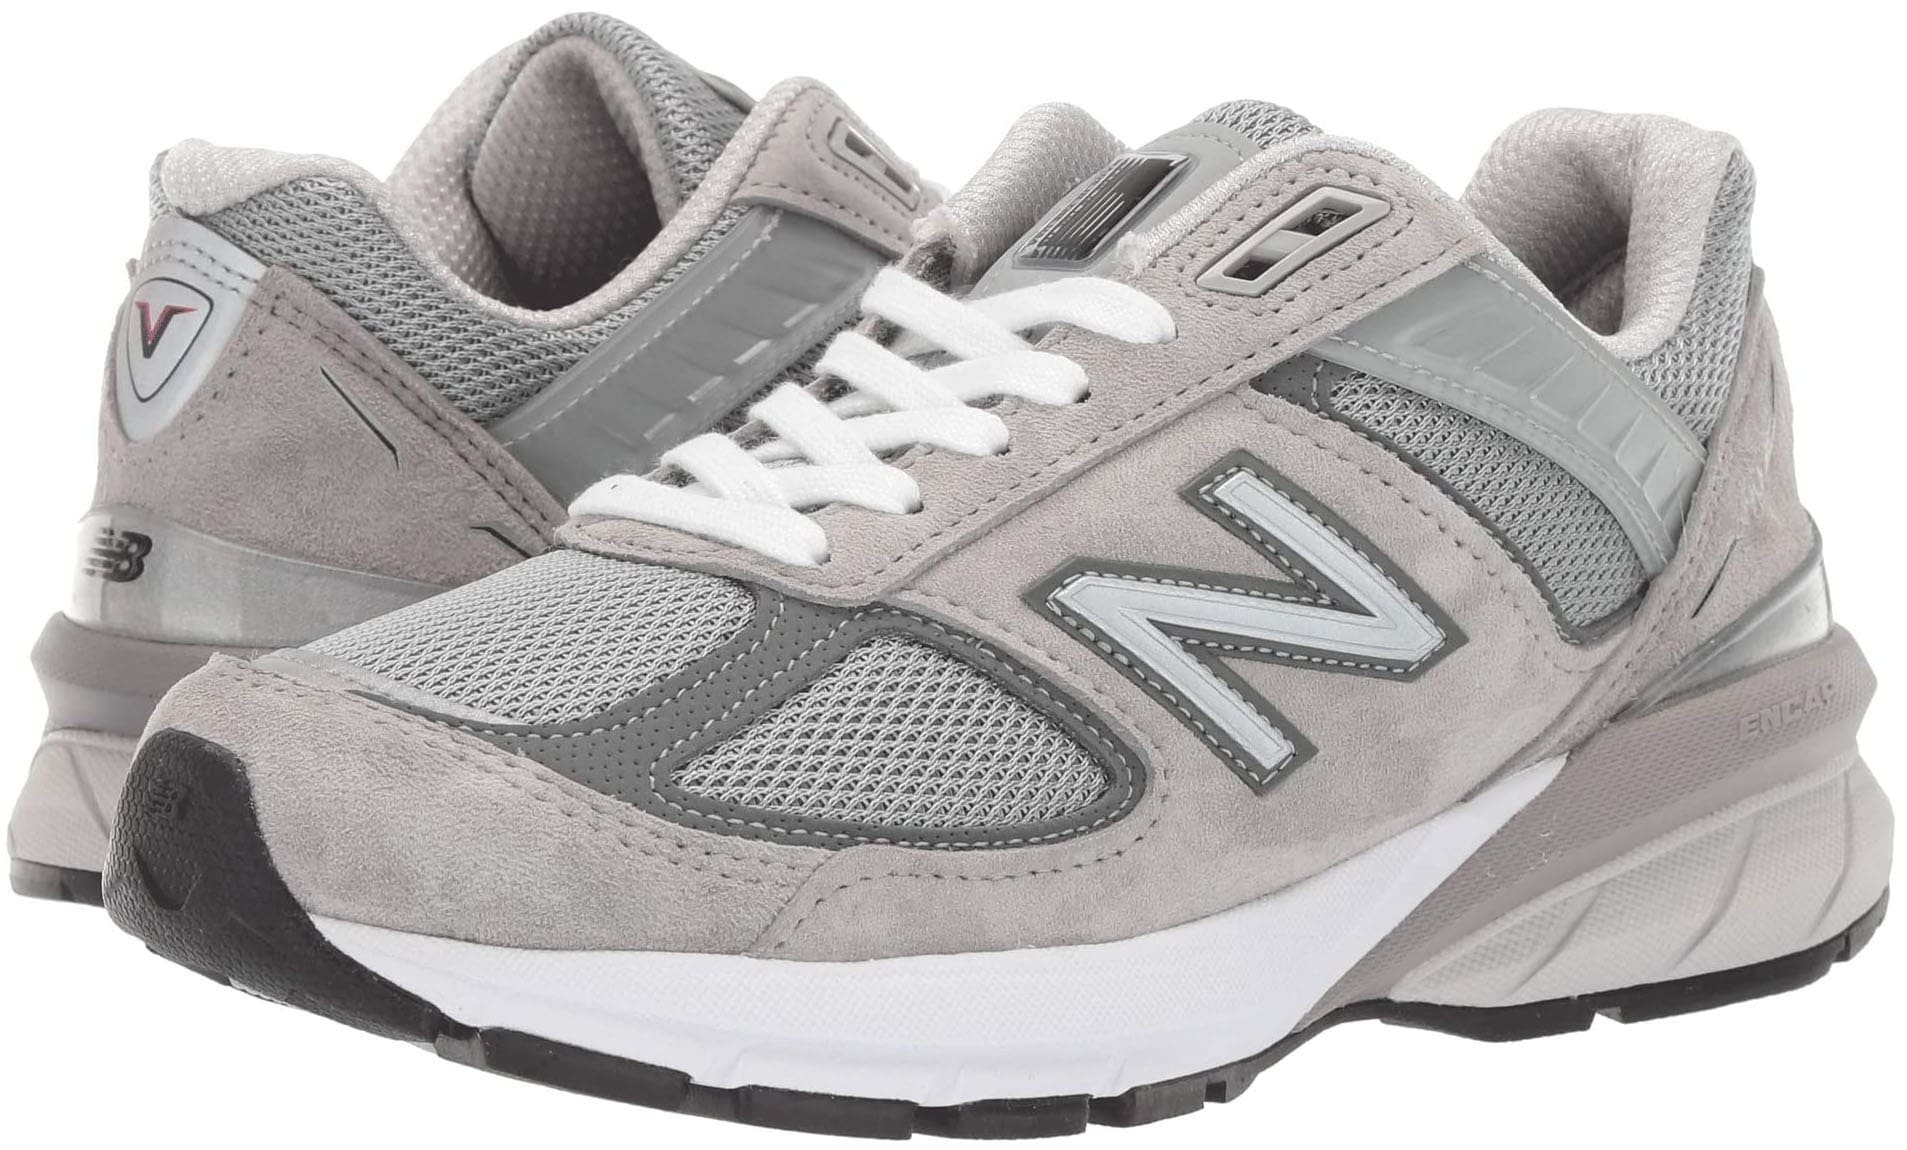 The New Balance Made in US 990v5 has ENCAP midsole cushioning for all-day comfort and support